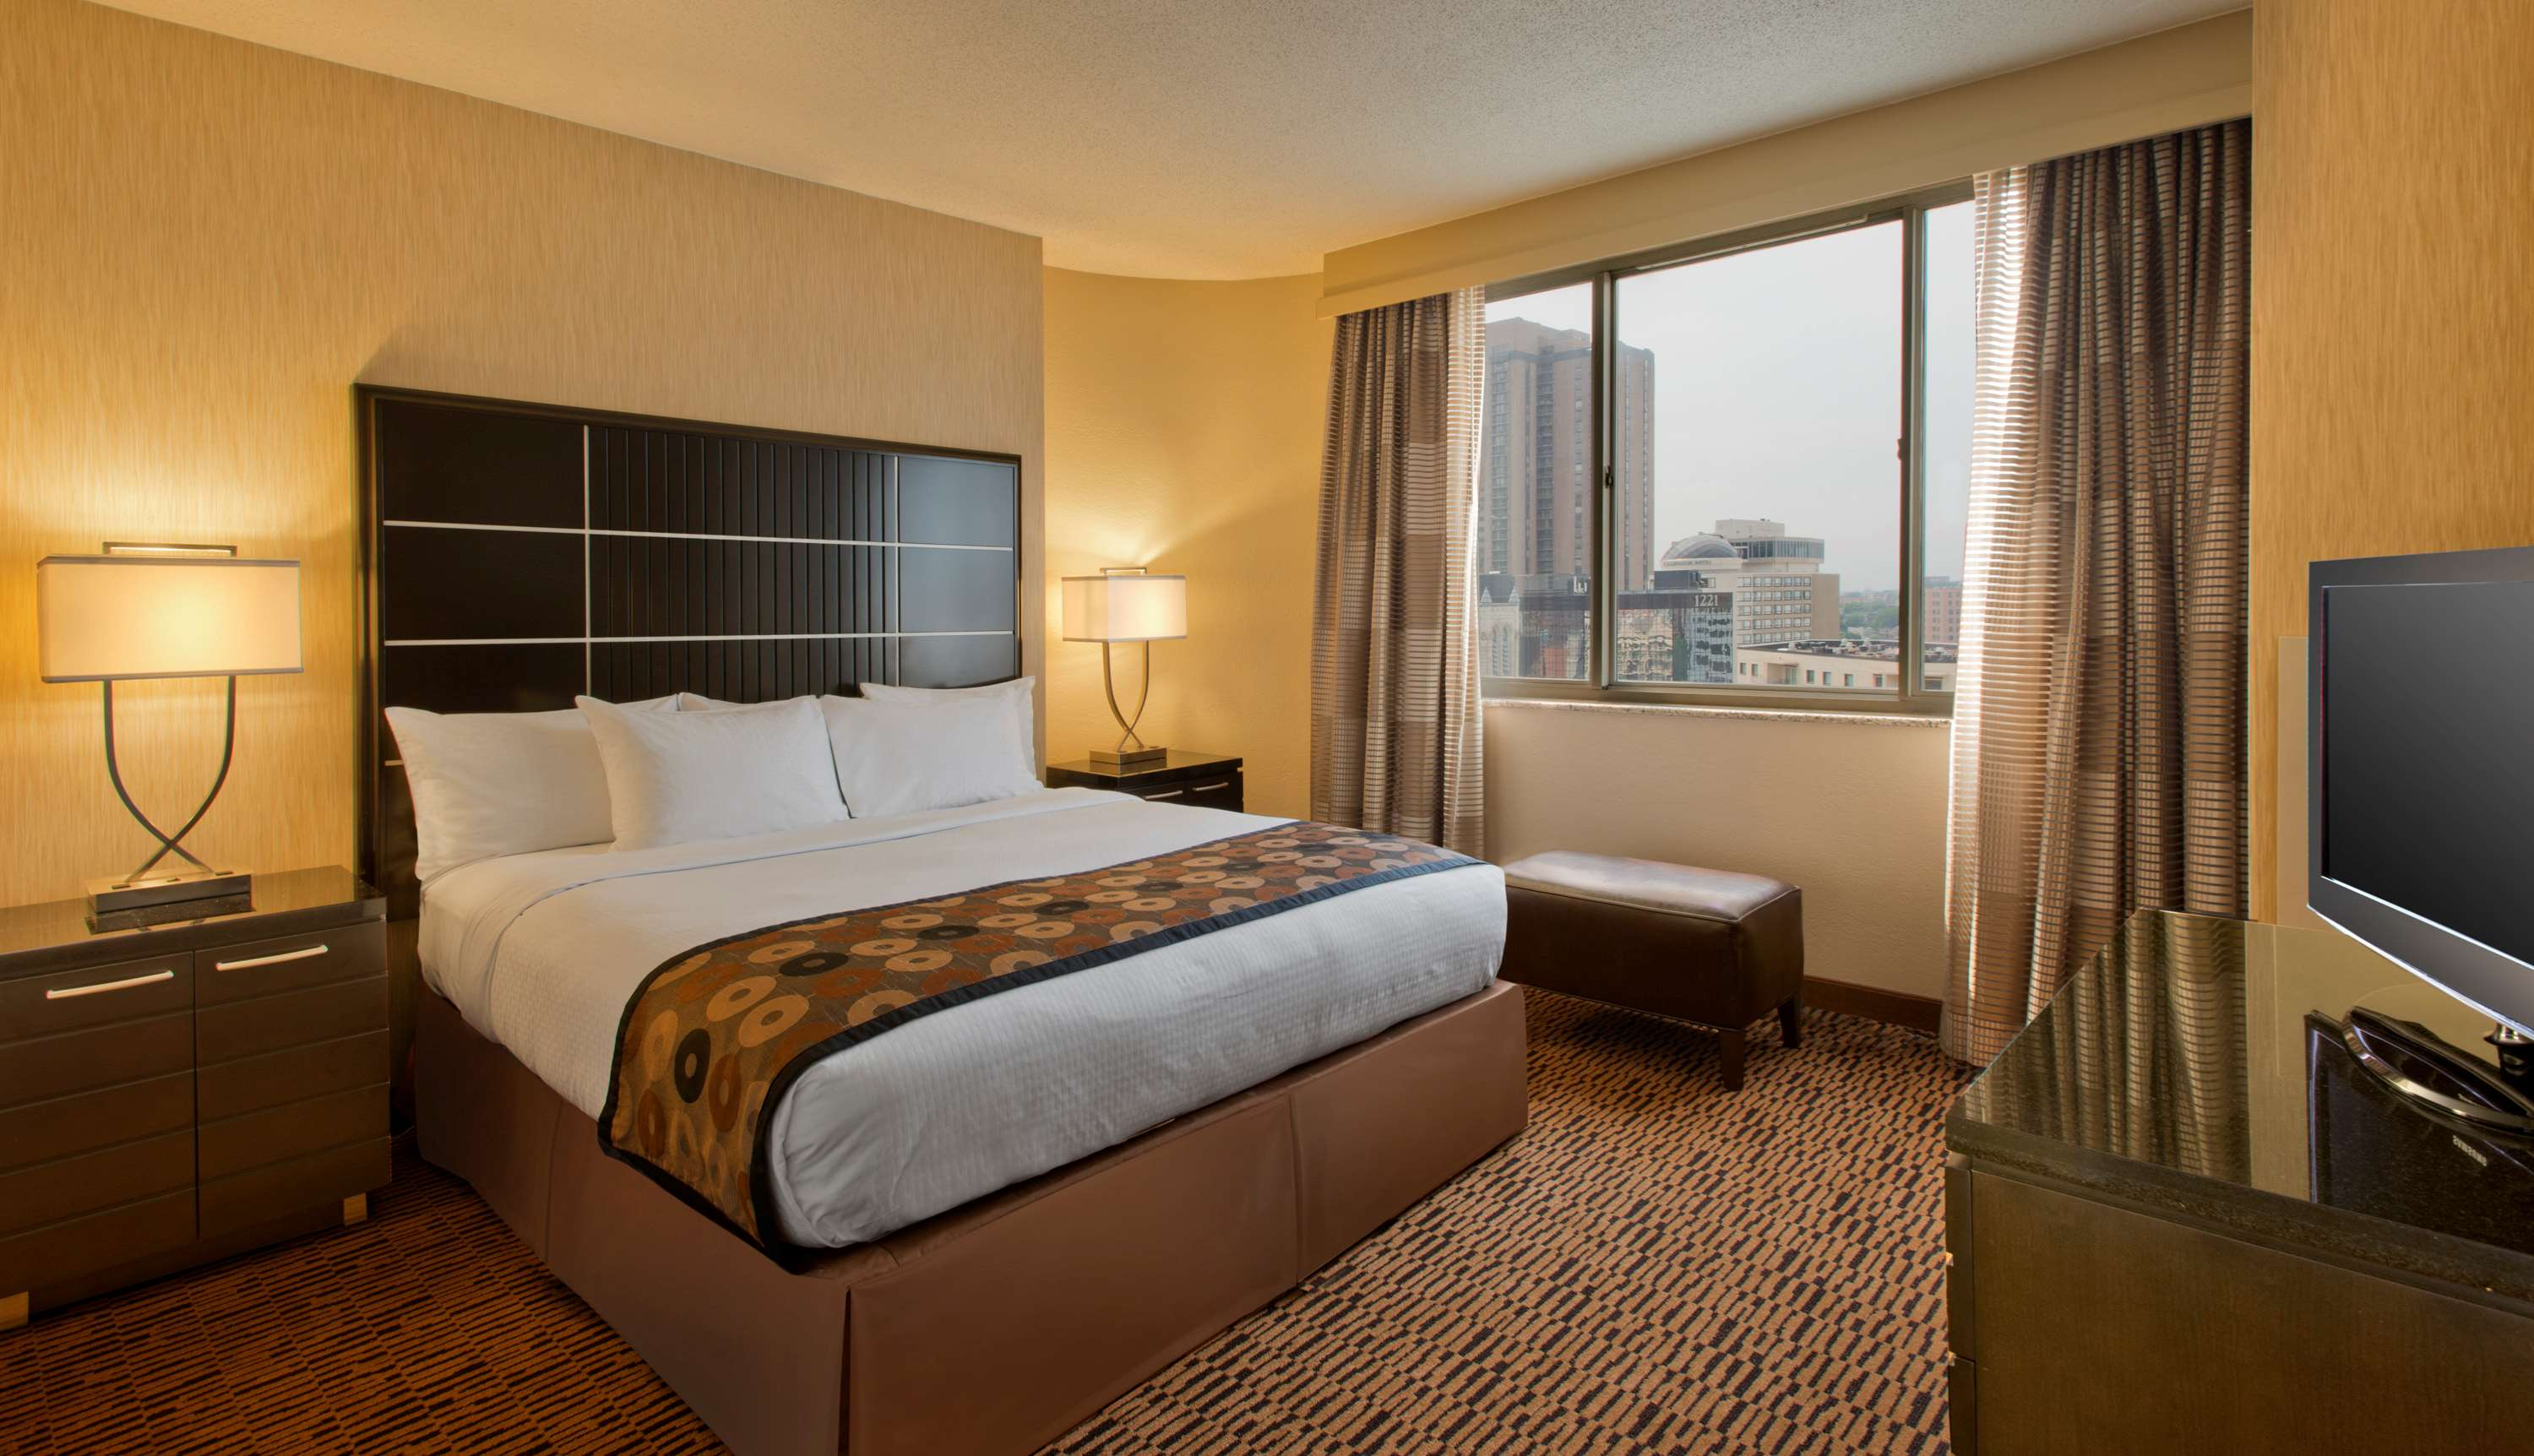 DoubleTree Suites by Hilton Hotel Minneapolis image 14